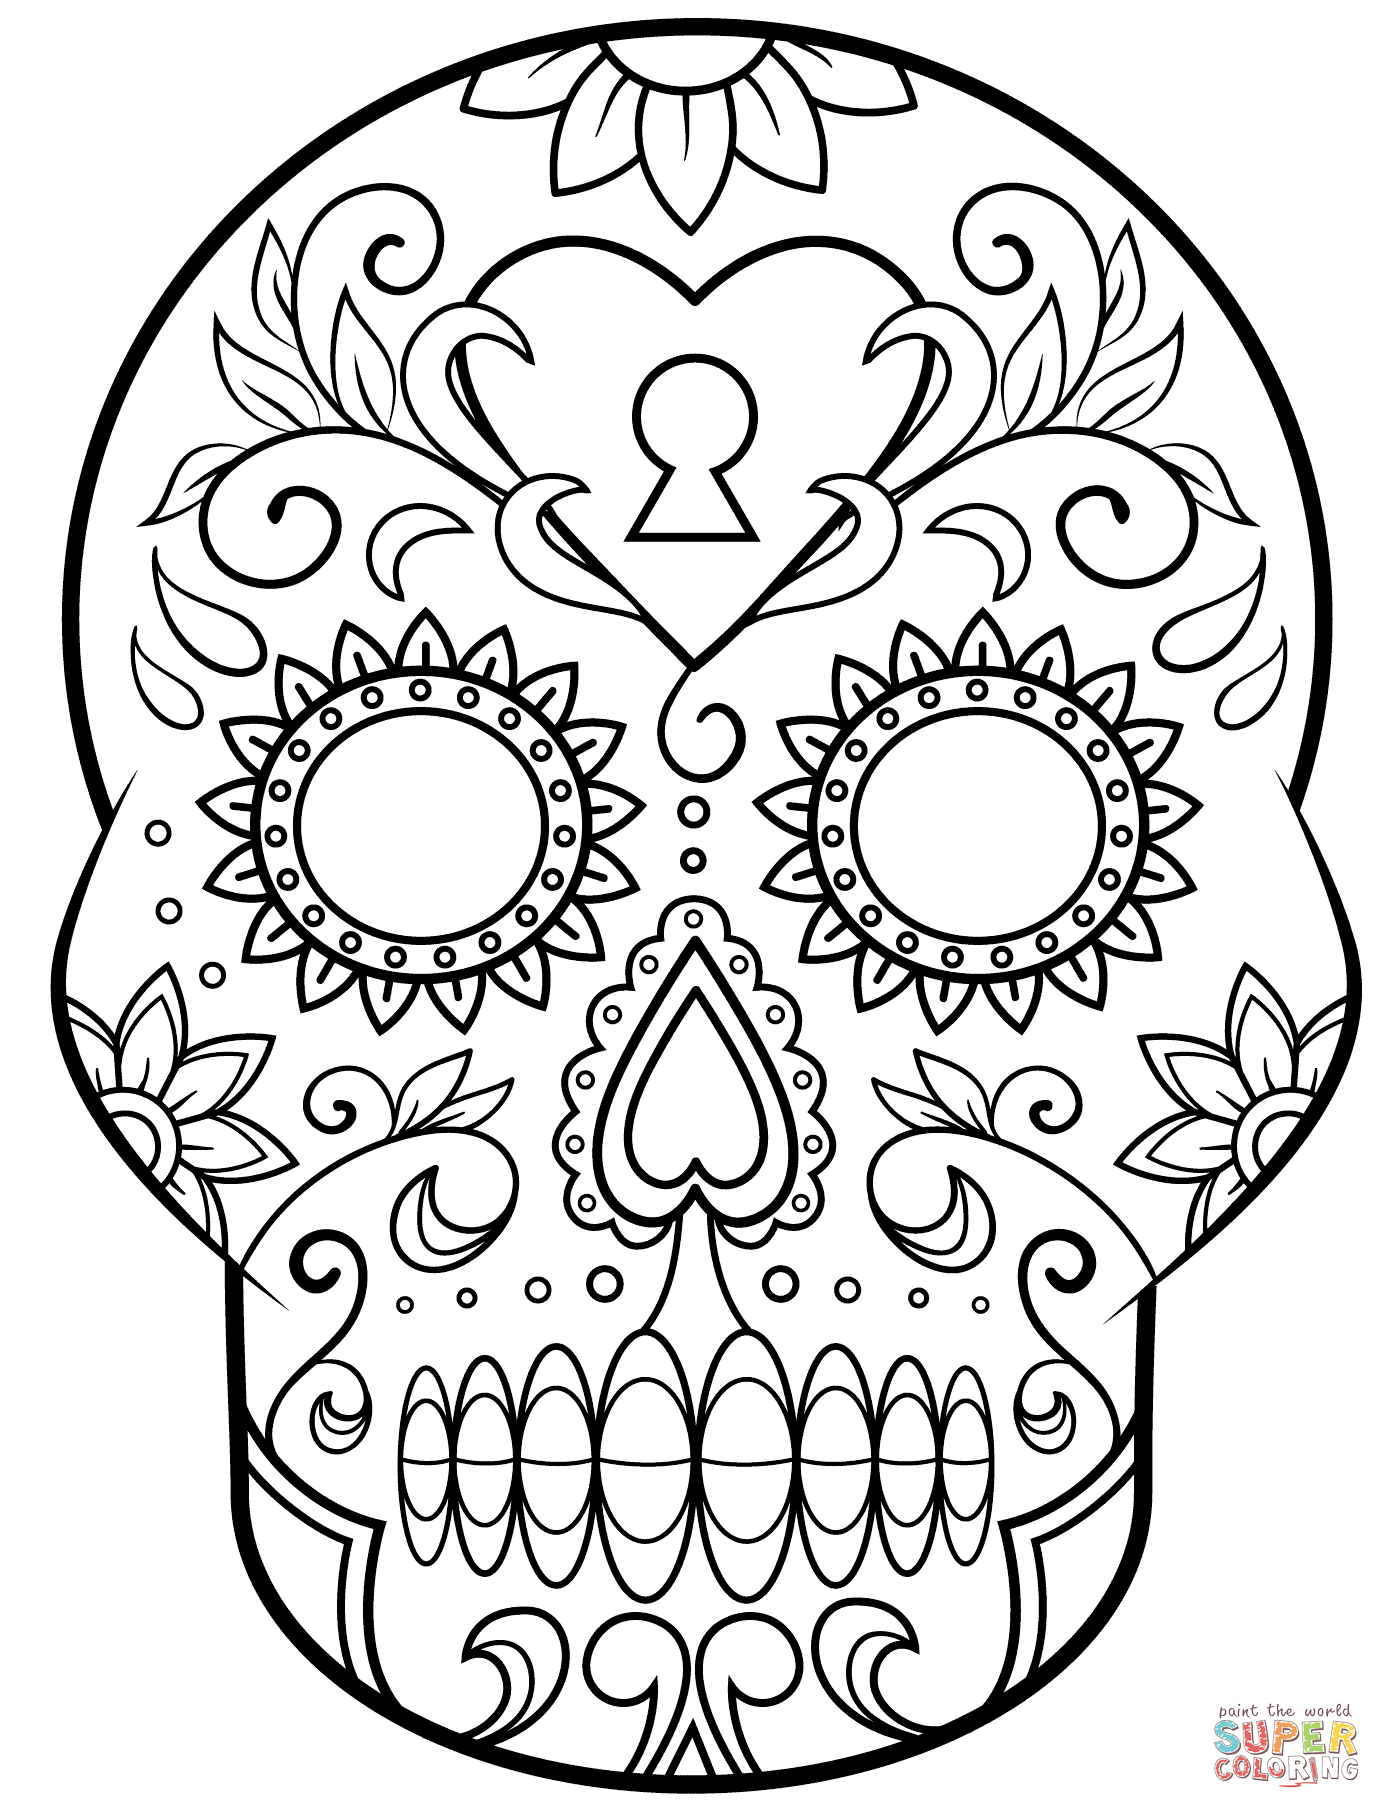 day of dead skull template day of the dead sugar skull coloring page free printable dead day skull template of